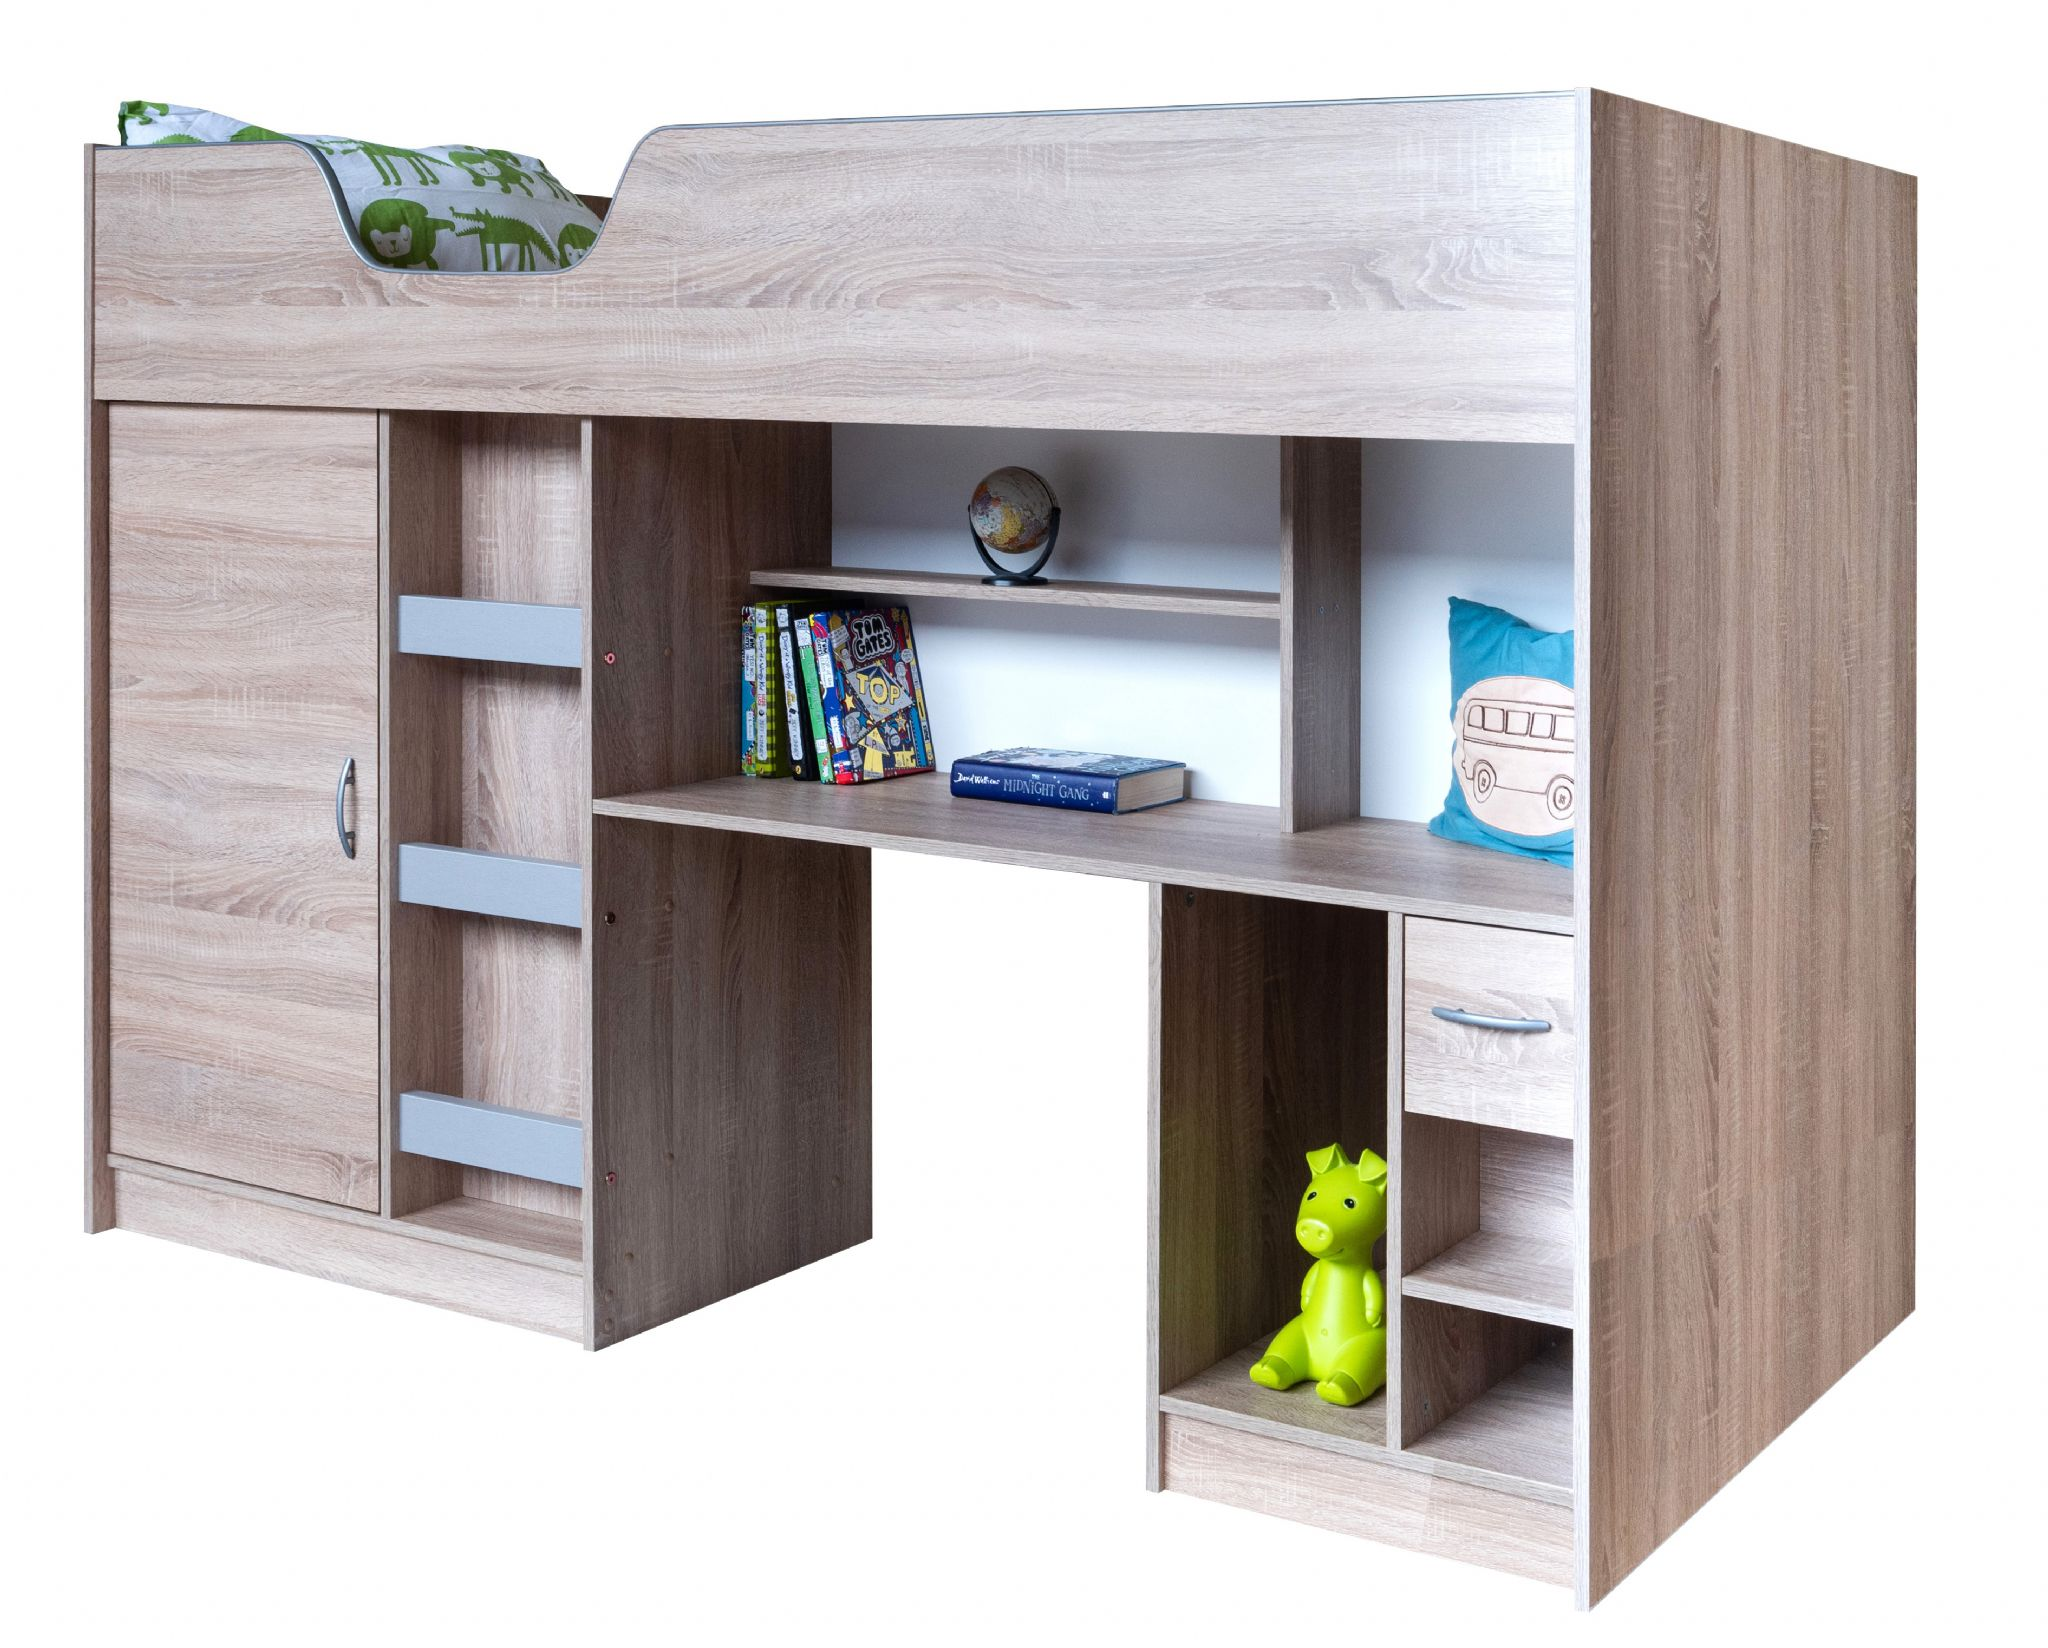 Picture of: High Sleeper Bed Lifestyle With Colour Options Ideal Childrens Safe Storage Bed